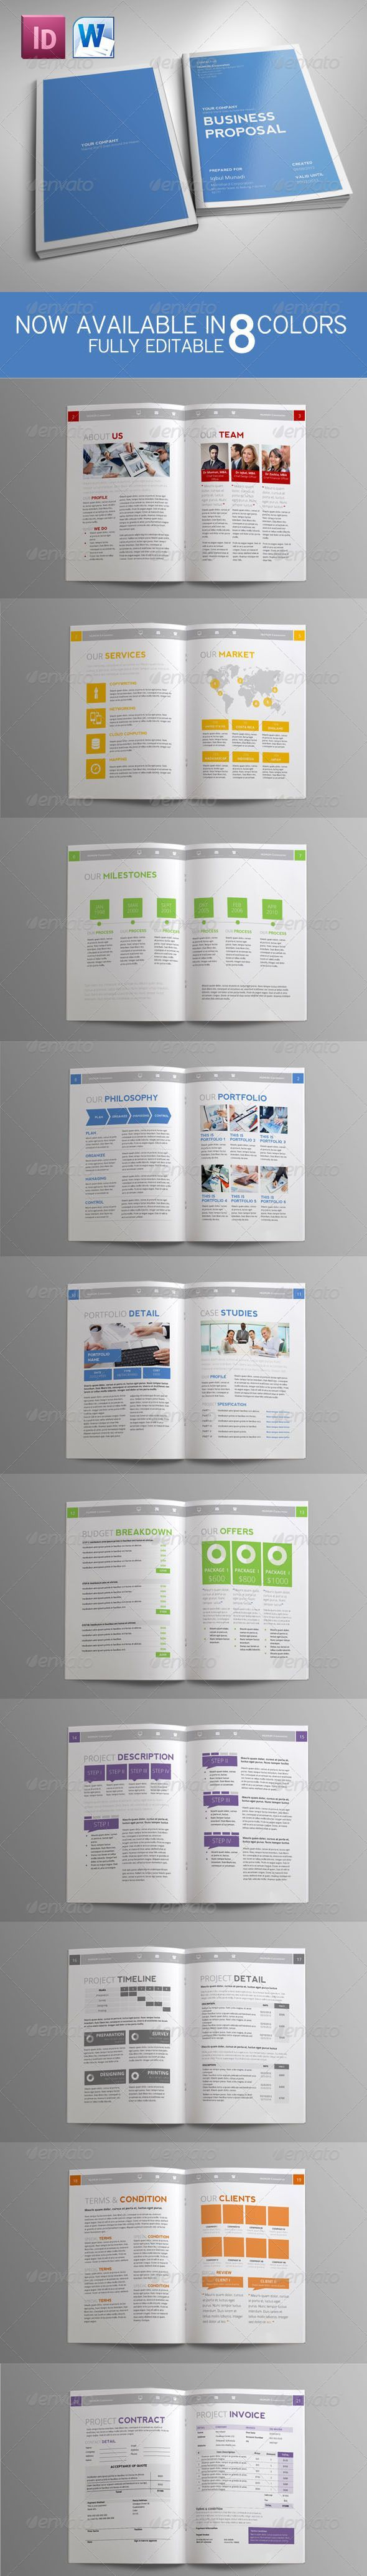 Commercial Proposal Format Fascinating 20 Best Business Propocal Images On Pinterest  Editorial Design .